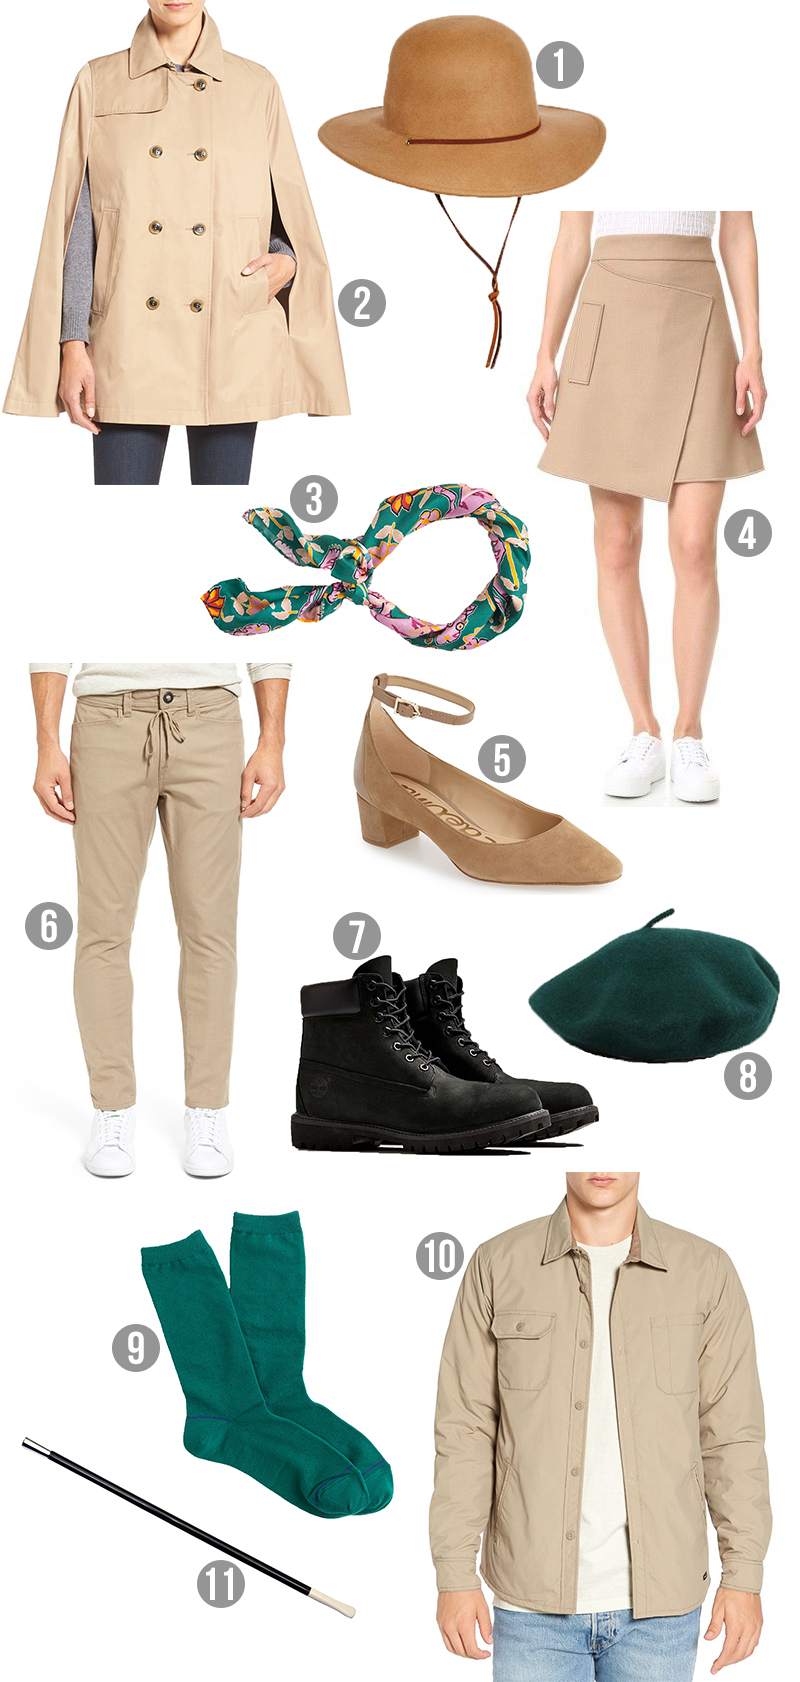 Troop Beverly Hills costume - inspired by Gray Malin's favorite movies